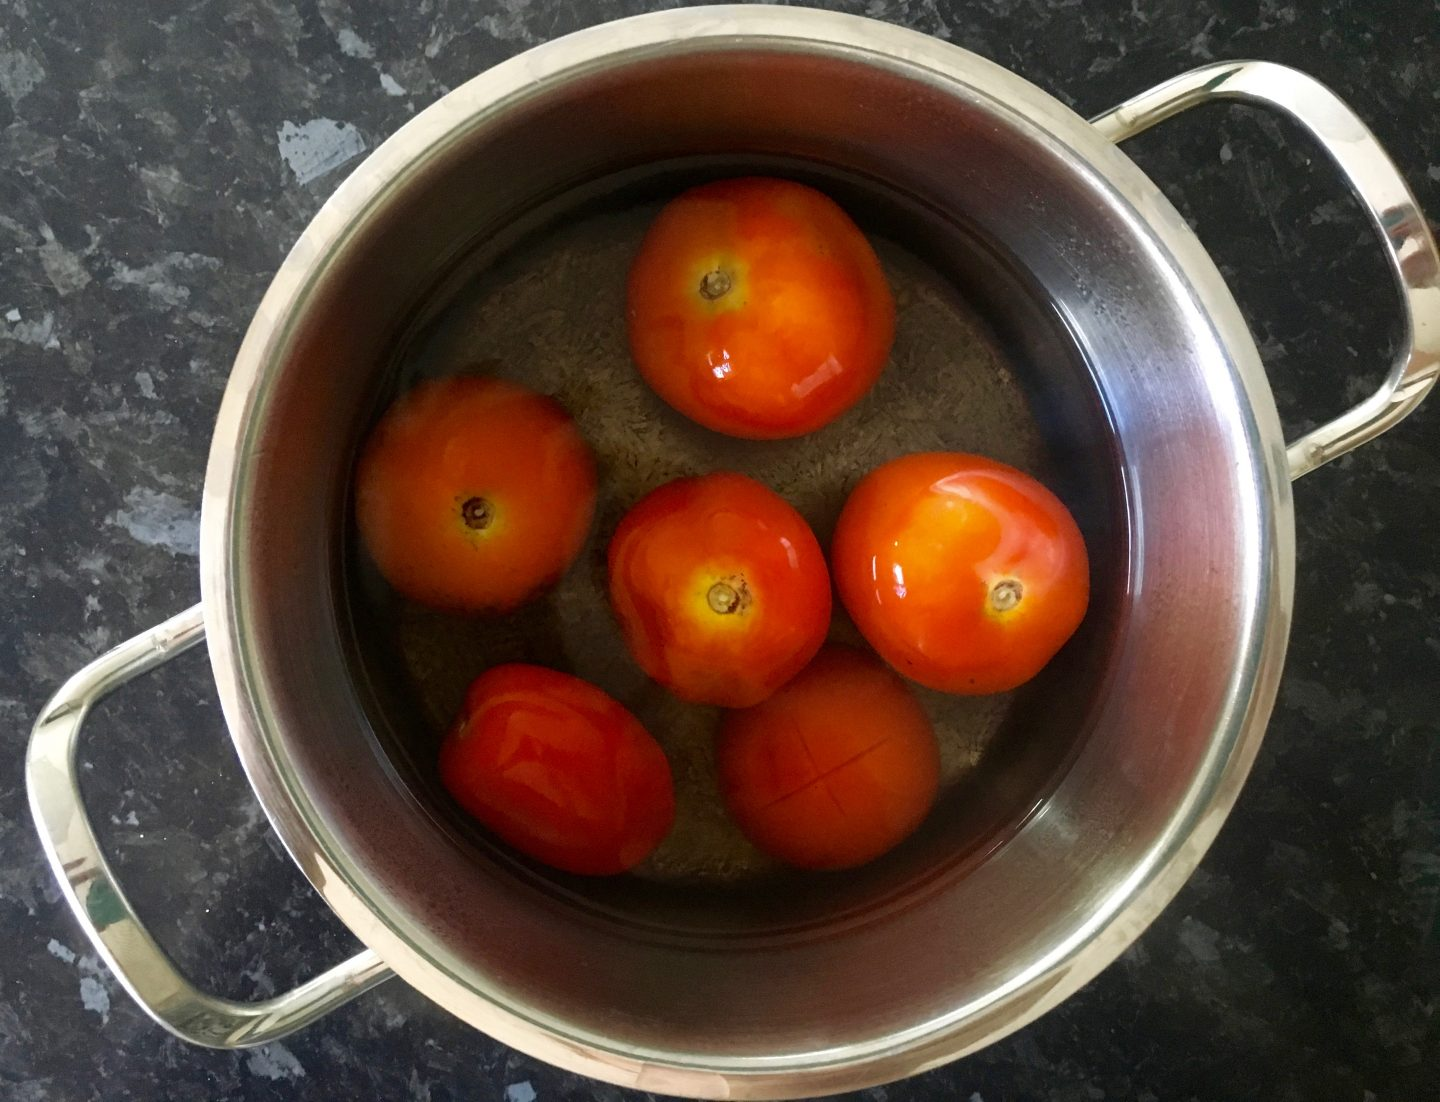 Using hot water to peel tomatoes